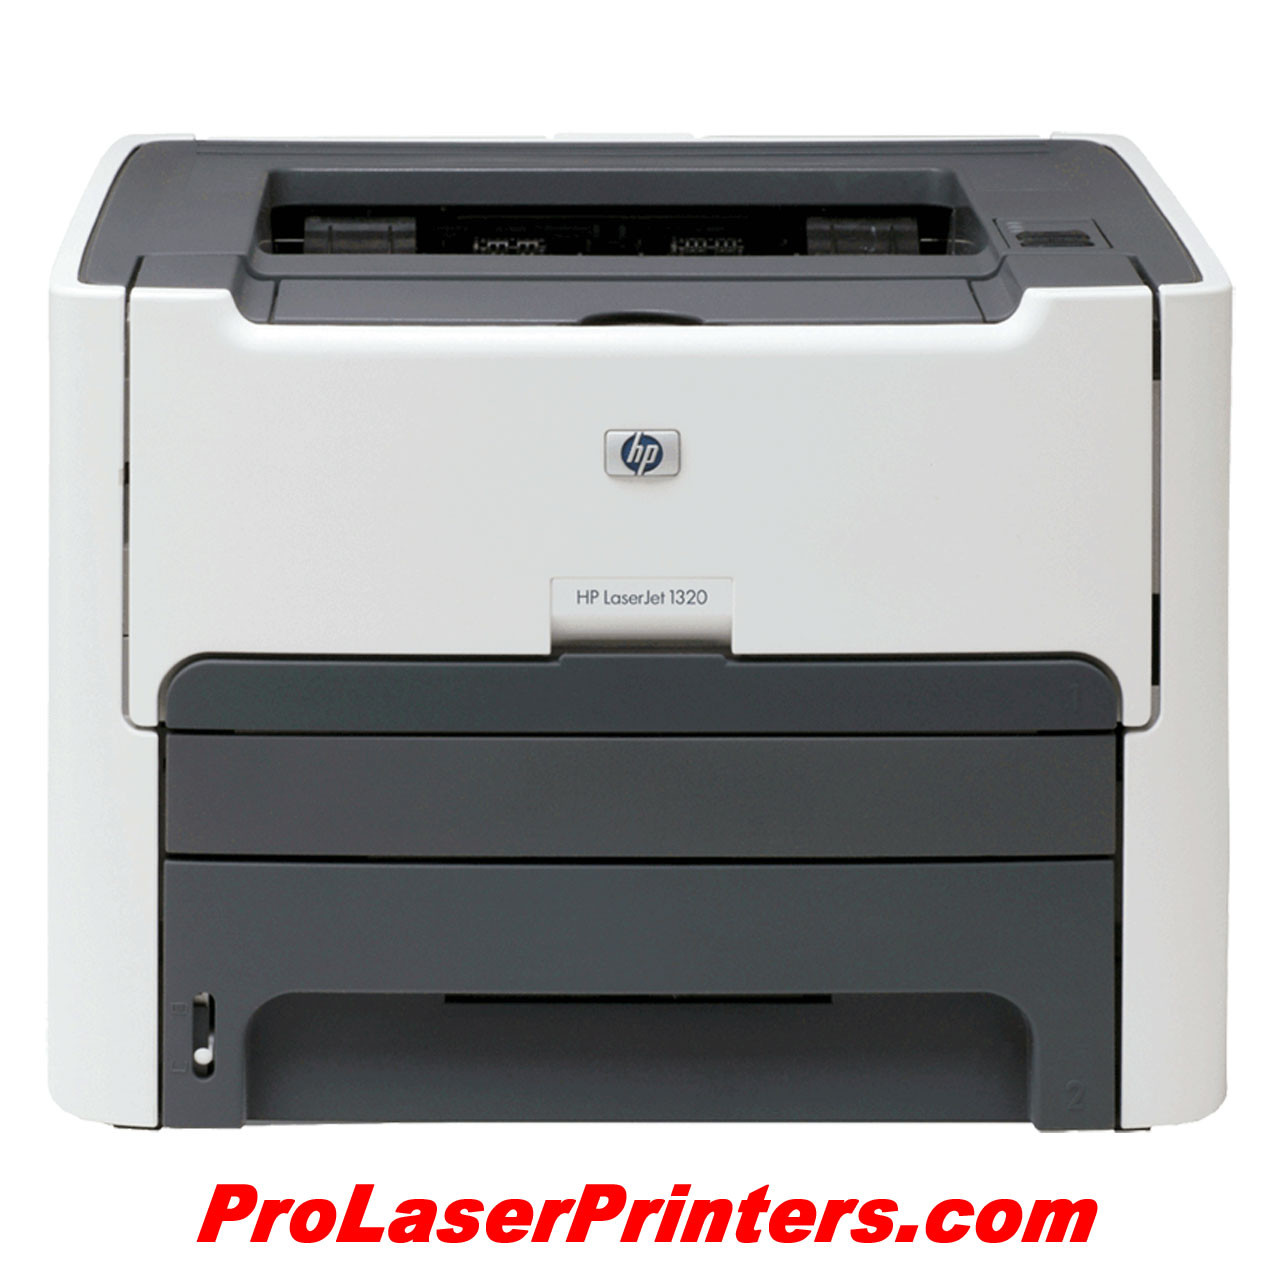 hp hewlett packard laserjet 1320 premium laser printer. Black Bedroom Furniture Sets. Home Design Ideas